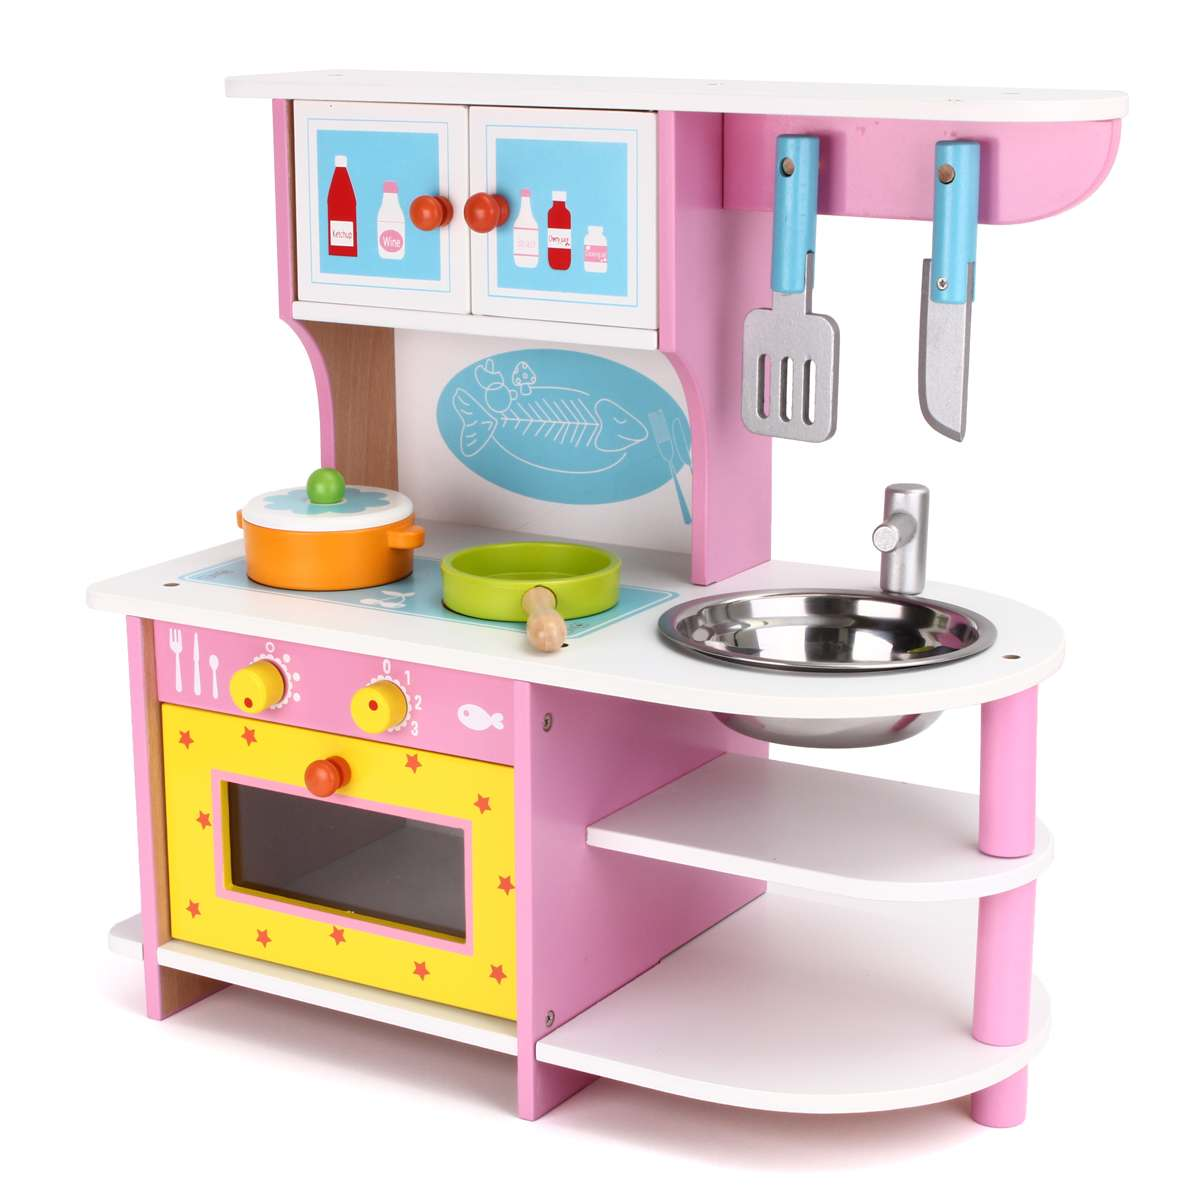 Large Kids Wooden Kitchen Toys Pretend Play Children Role Play Pretend Toy Set Cooking Tools Kit Girls Birthday Gifts Pink